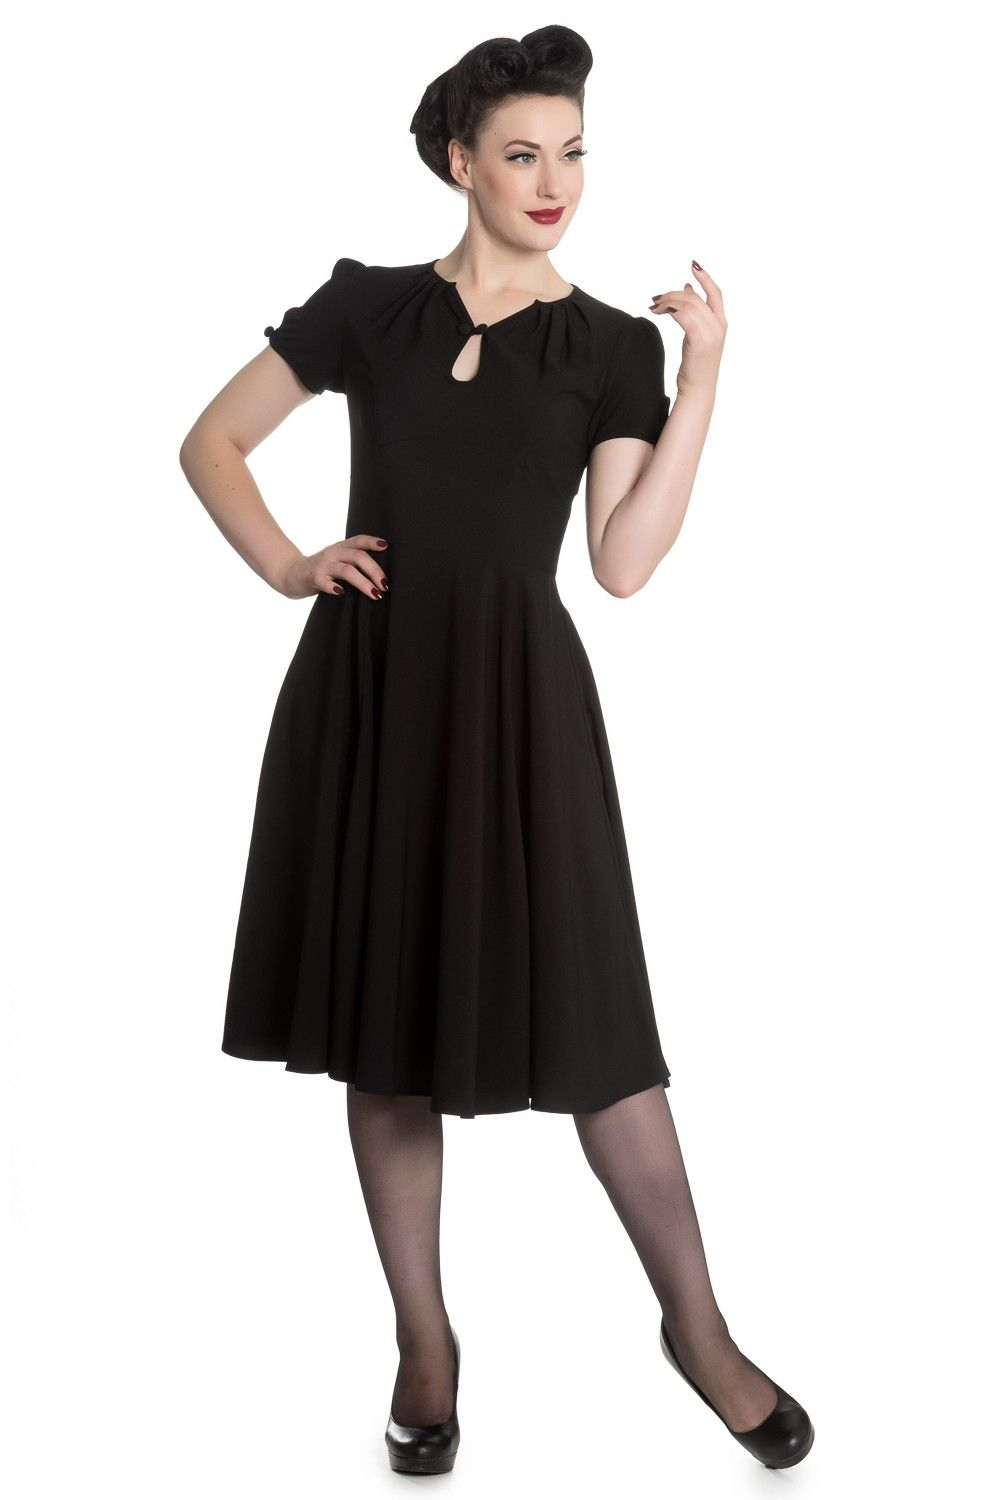 Riley 50er Jahre retro Vintage Style Petticoat Kleid v. Hell Bunny ...